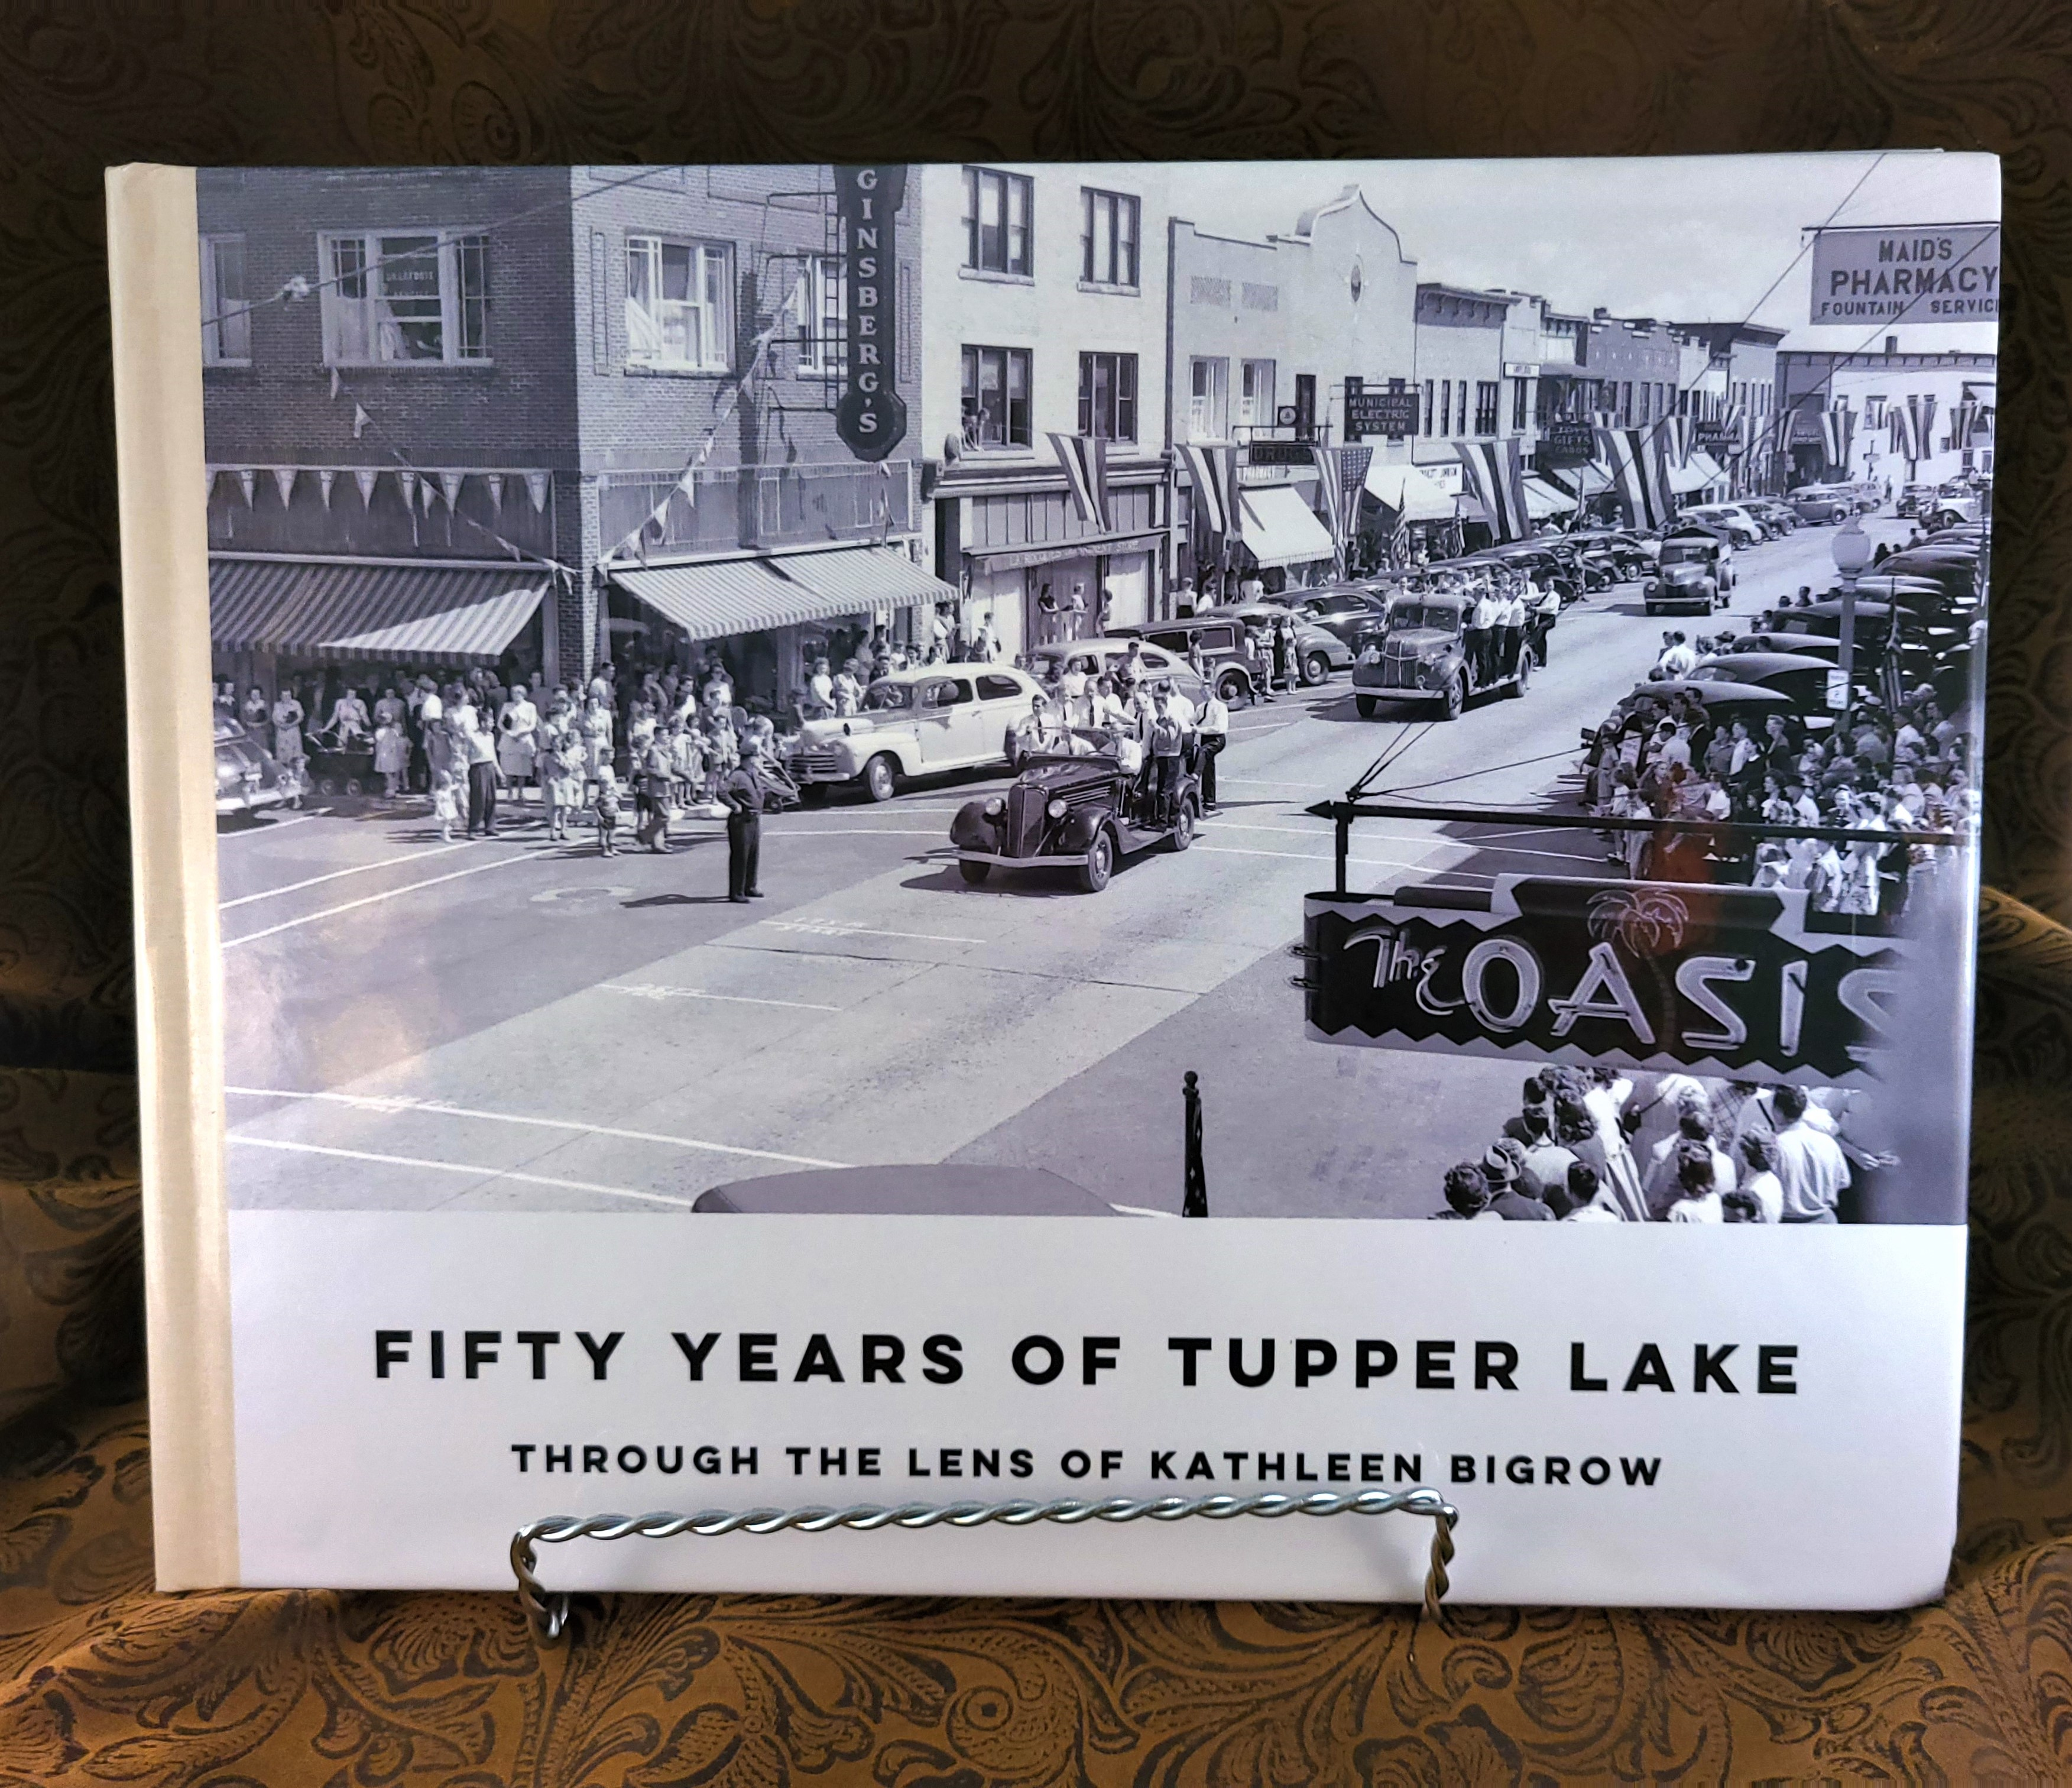 Fifty Years of Tupper Lake: Through the Lens of Kathleen Bigrow